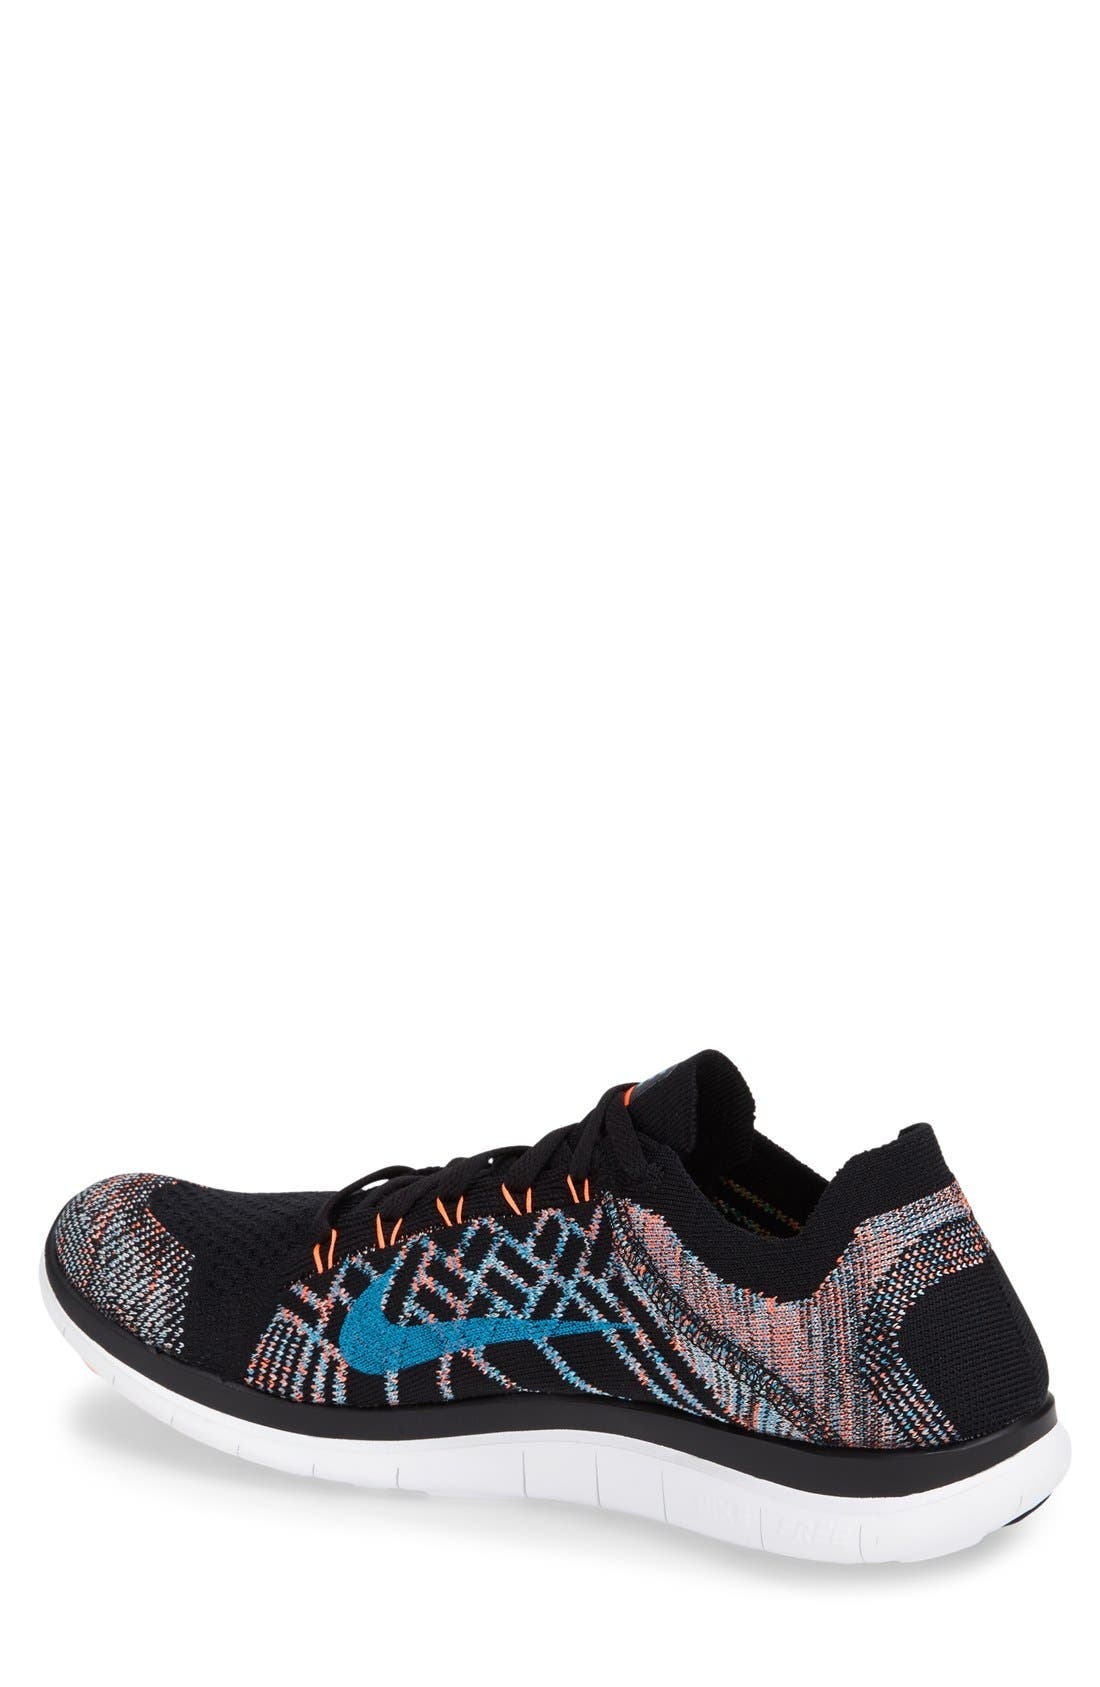 Alternate Image 2  - Nike 'Free Flyknit 4.0' Running Shoe (Men)